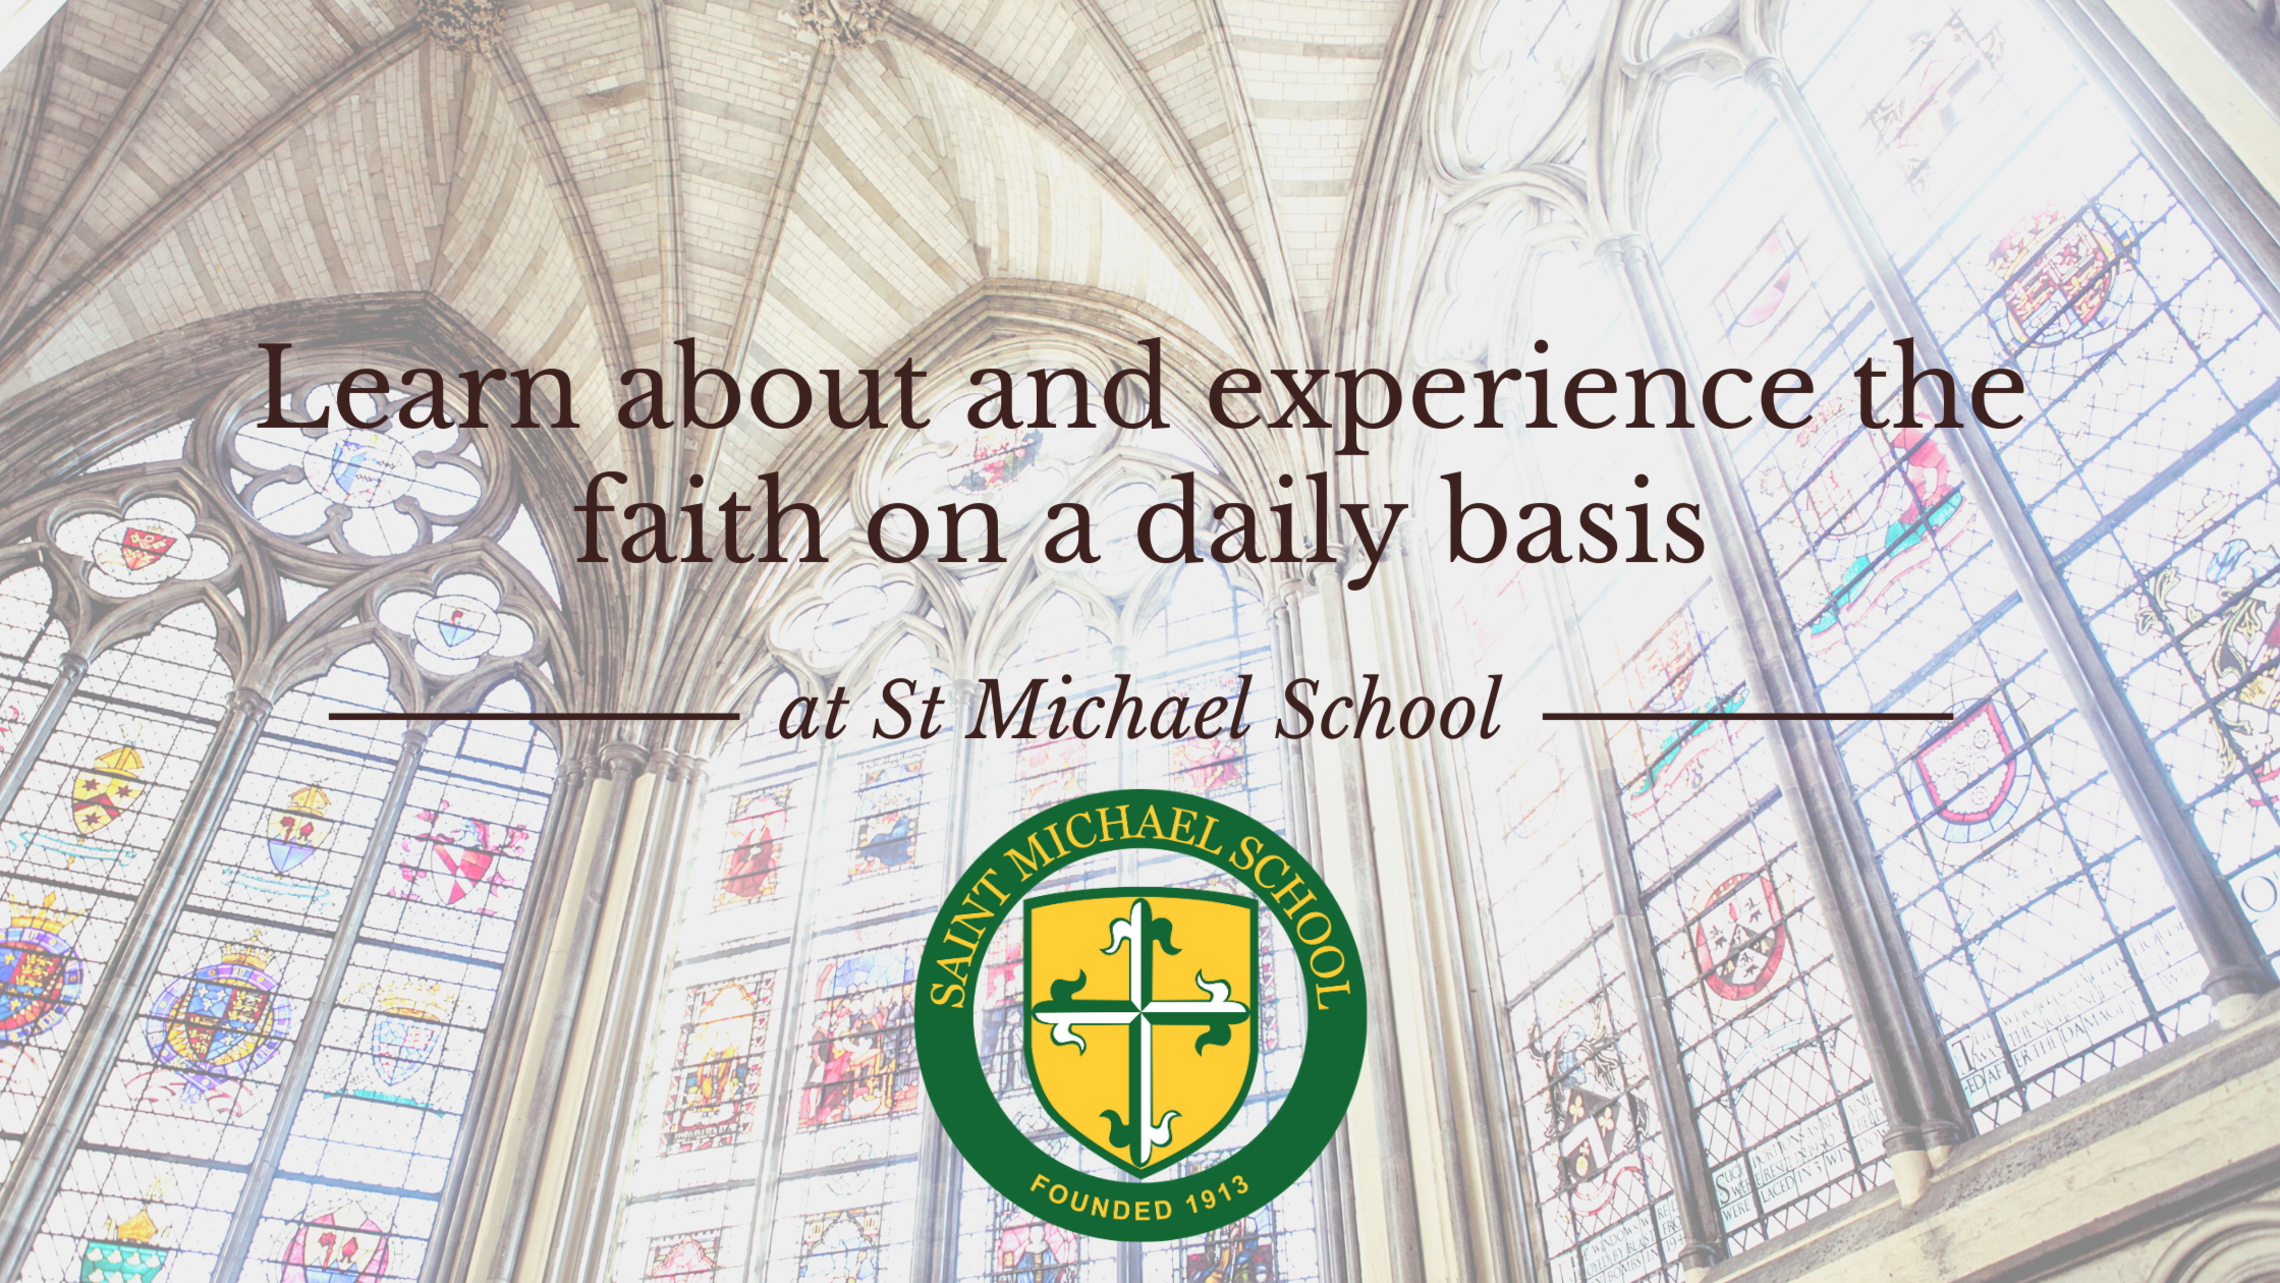 Learn About And Experience The Faith On A Daily Basis